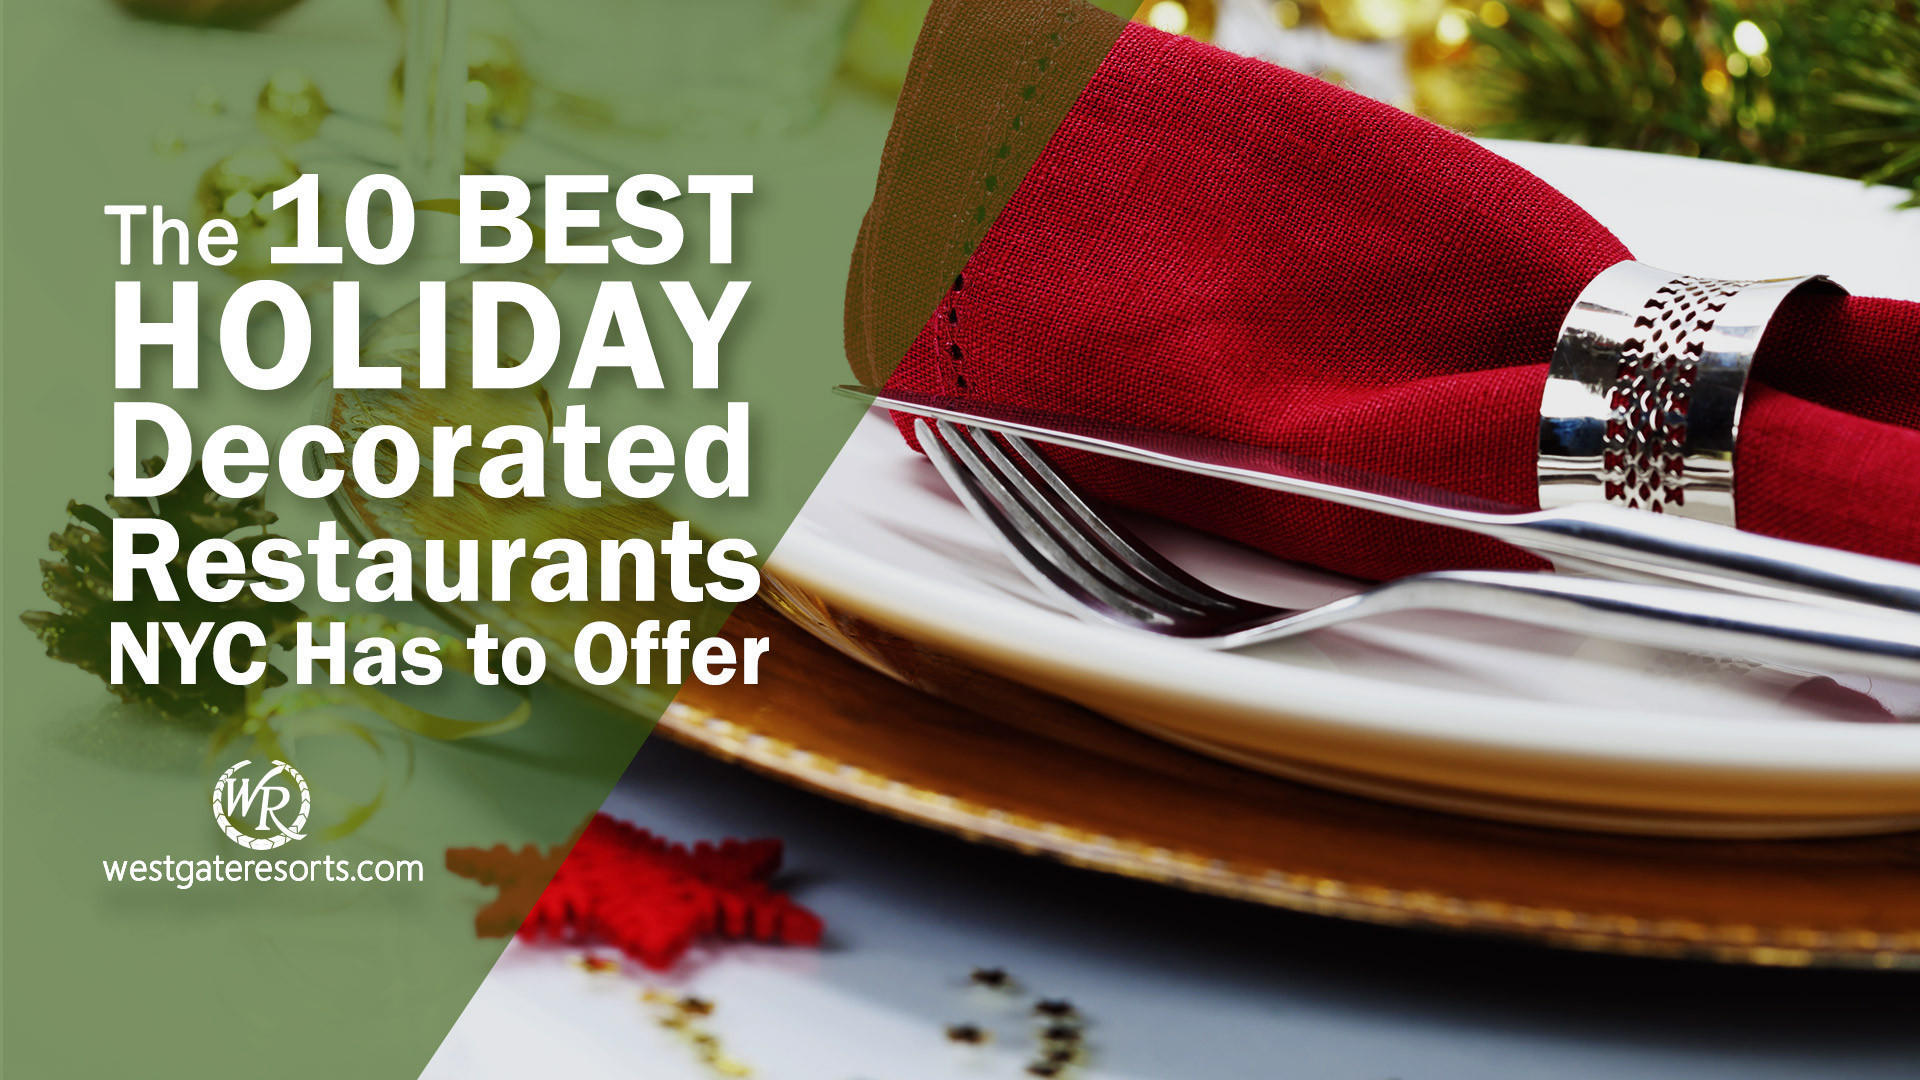 The 10 Best Christmas Decorated Restaurants NYC Has to Offer   Westgate New York City